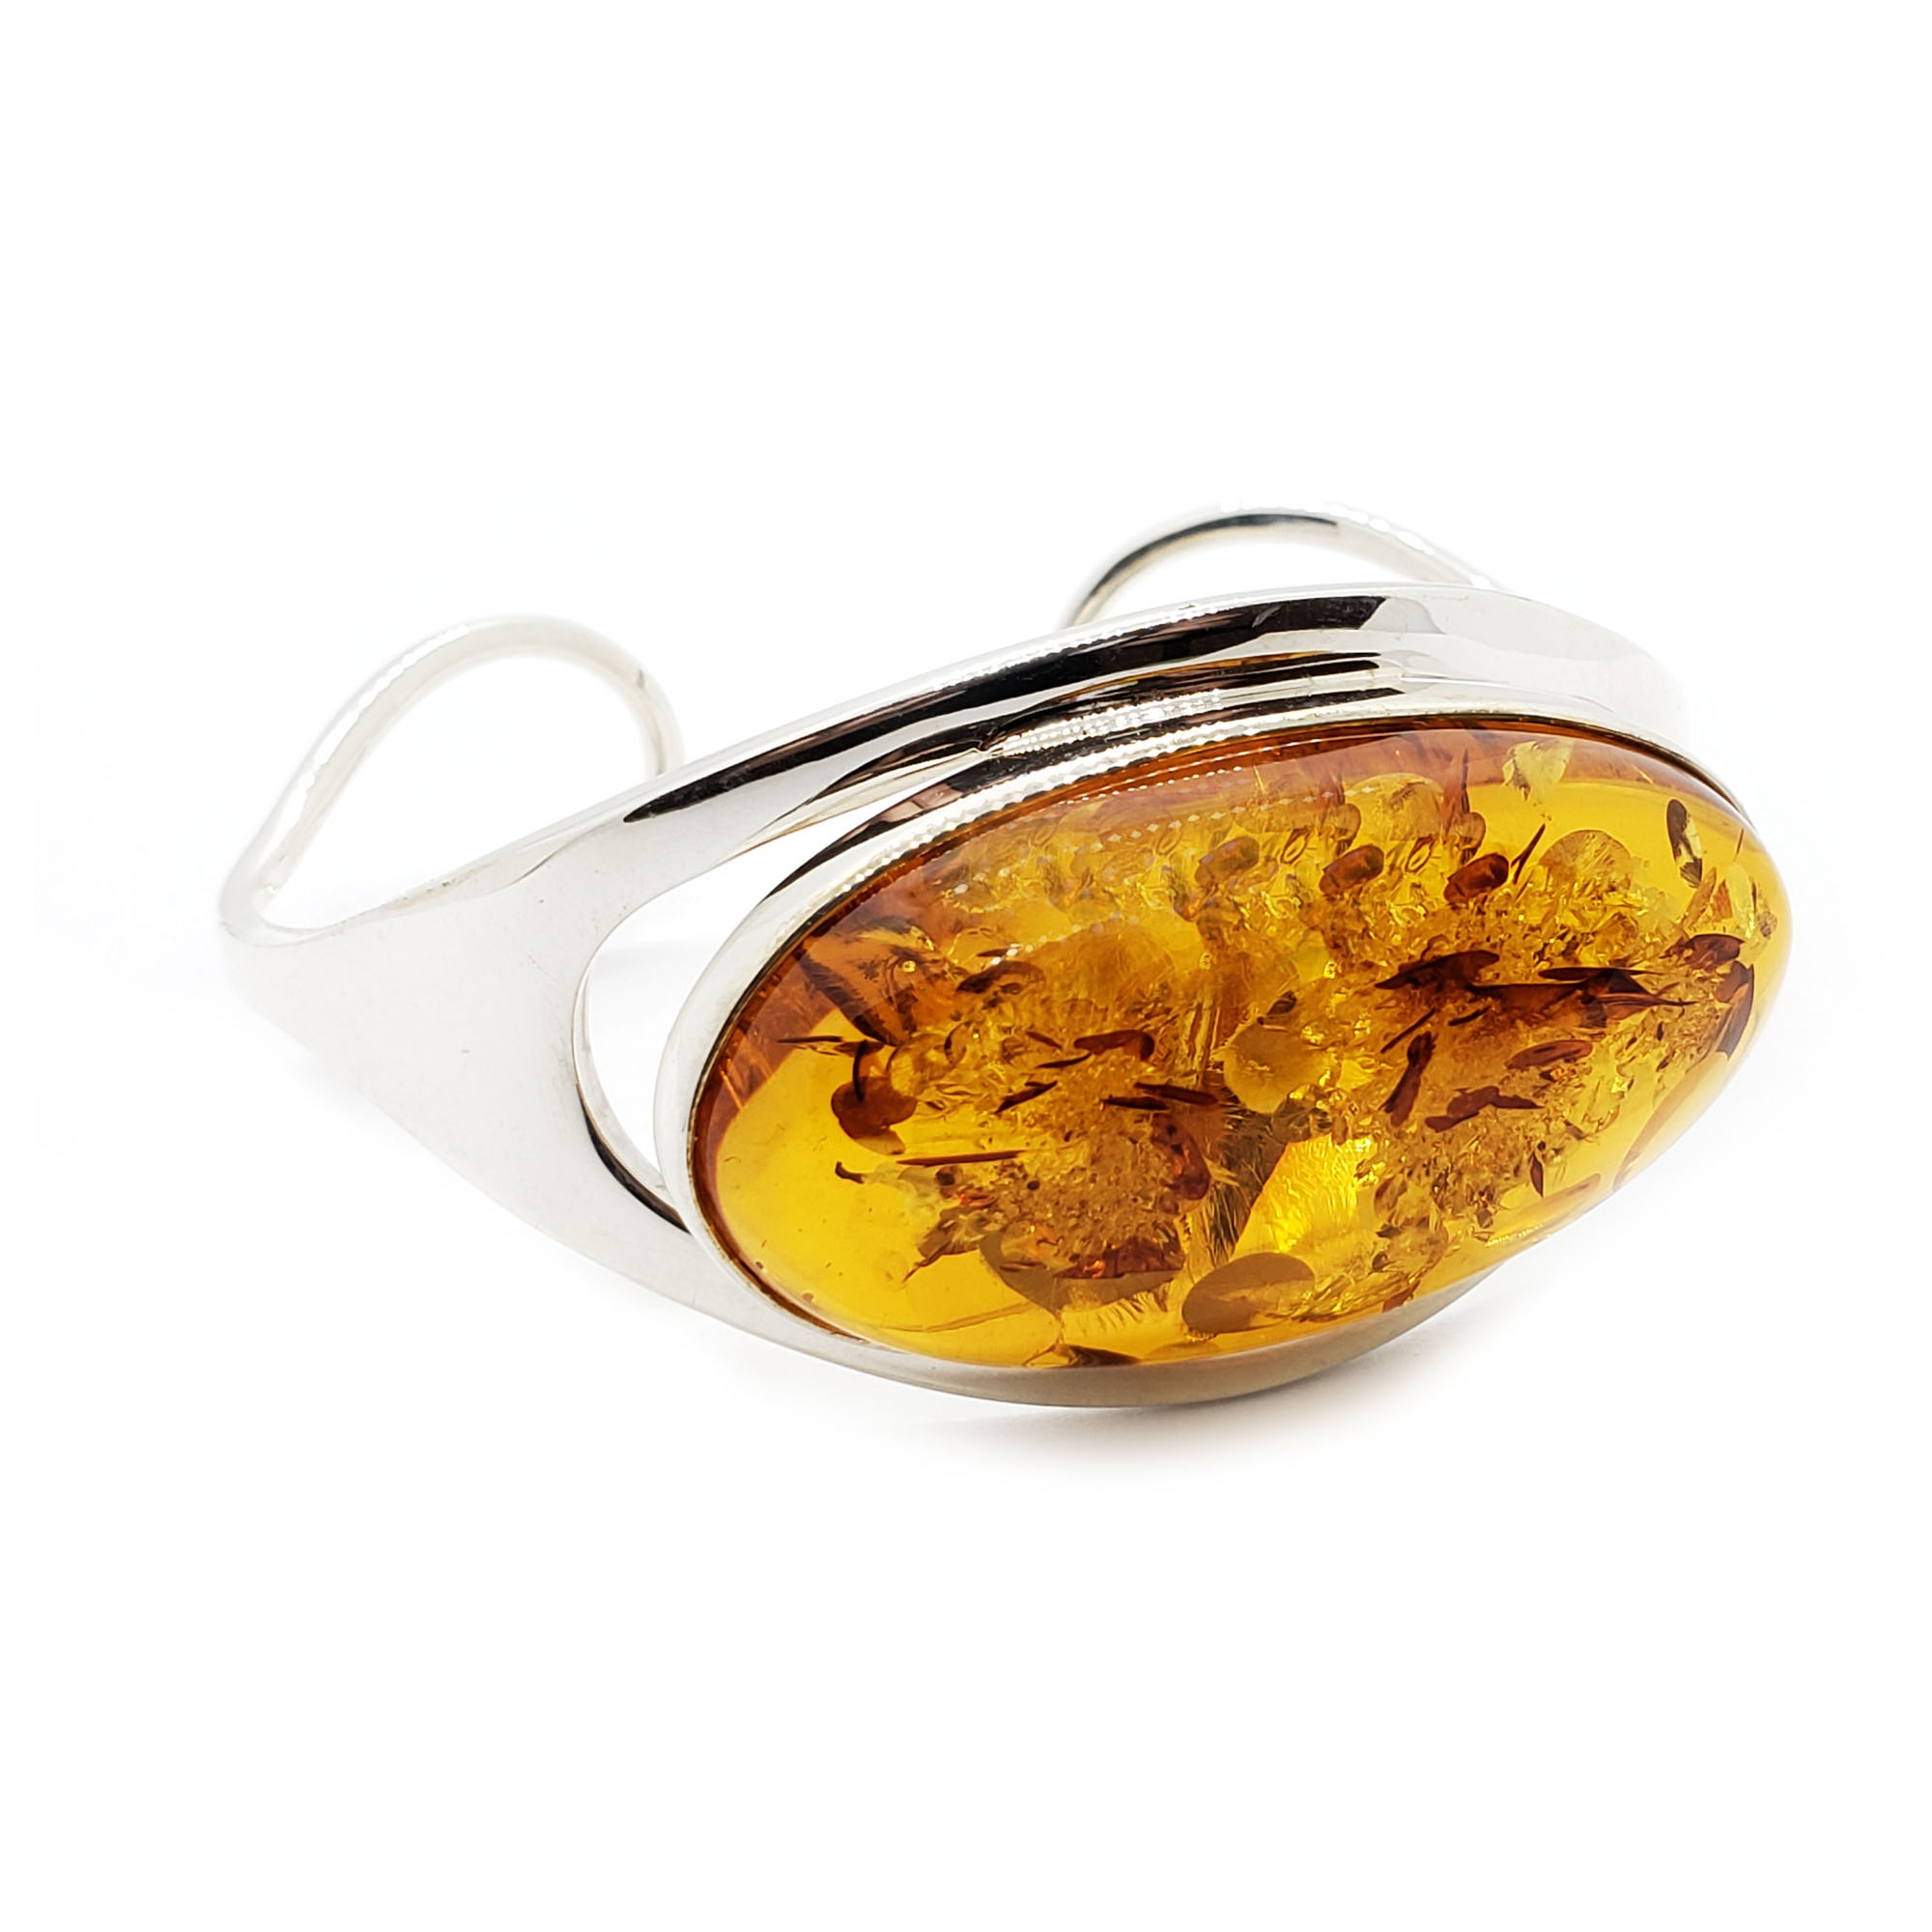 Cognac Baltic Amber Sterling Silver Cuff Bracelet. Oval shaped amber stone set in .925 sterling silver. Open cuff bracelet. IMPORTANT!!! Bracelets are handmade. The product picture may display minor variations to the actual stone, due to the composition and natural properties of gemstones.